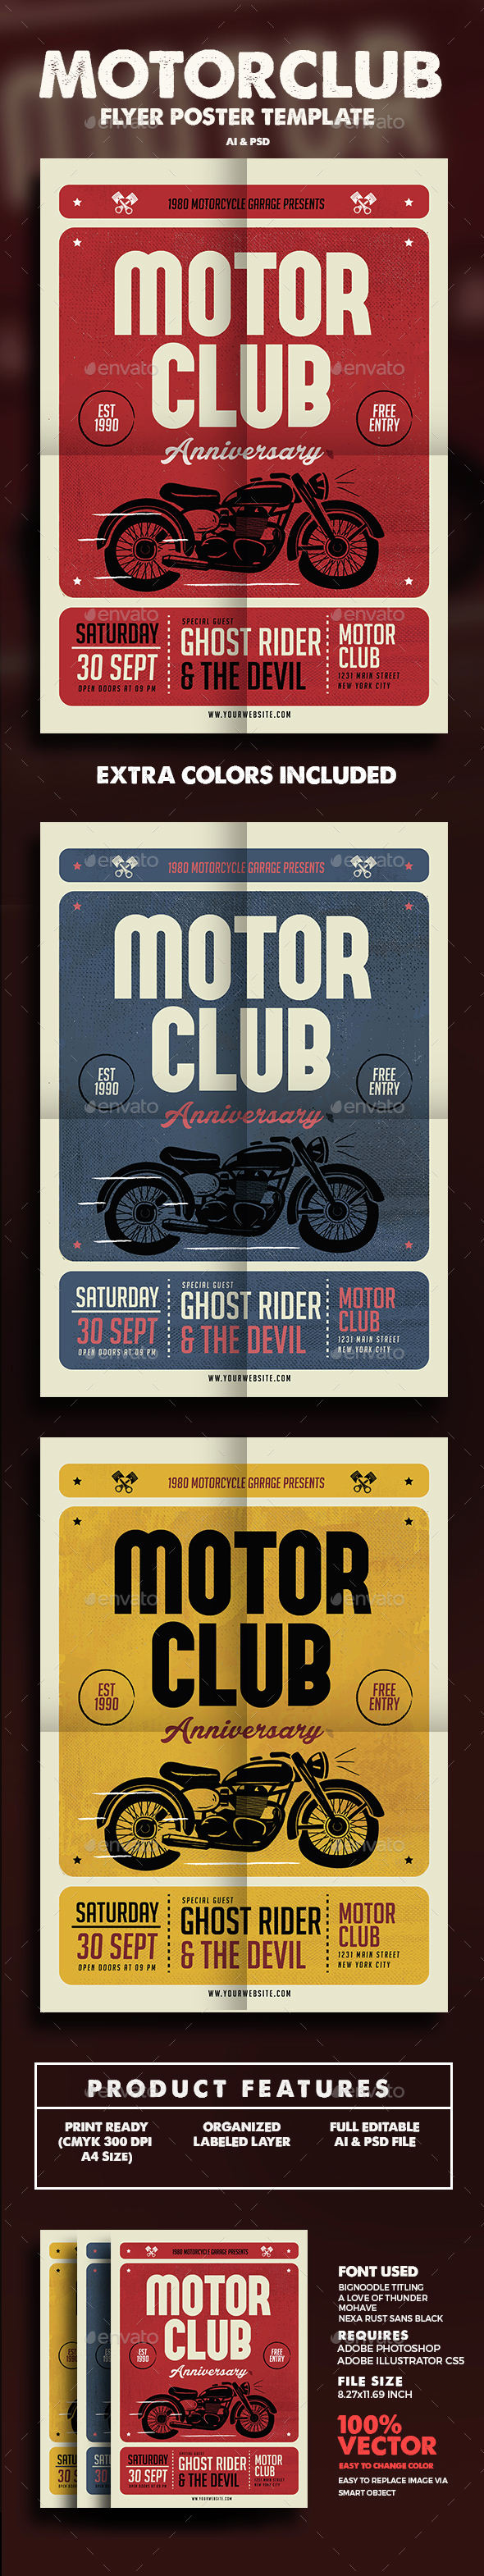 Motorclub Flyer - Events Flyers